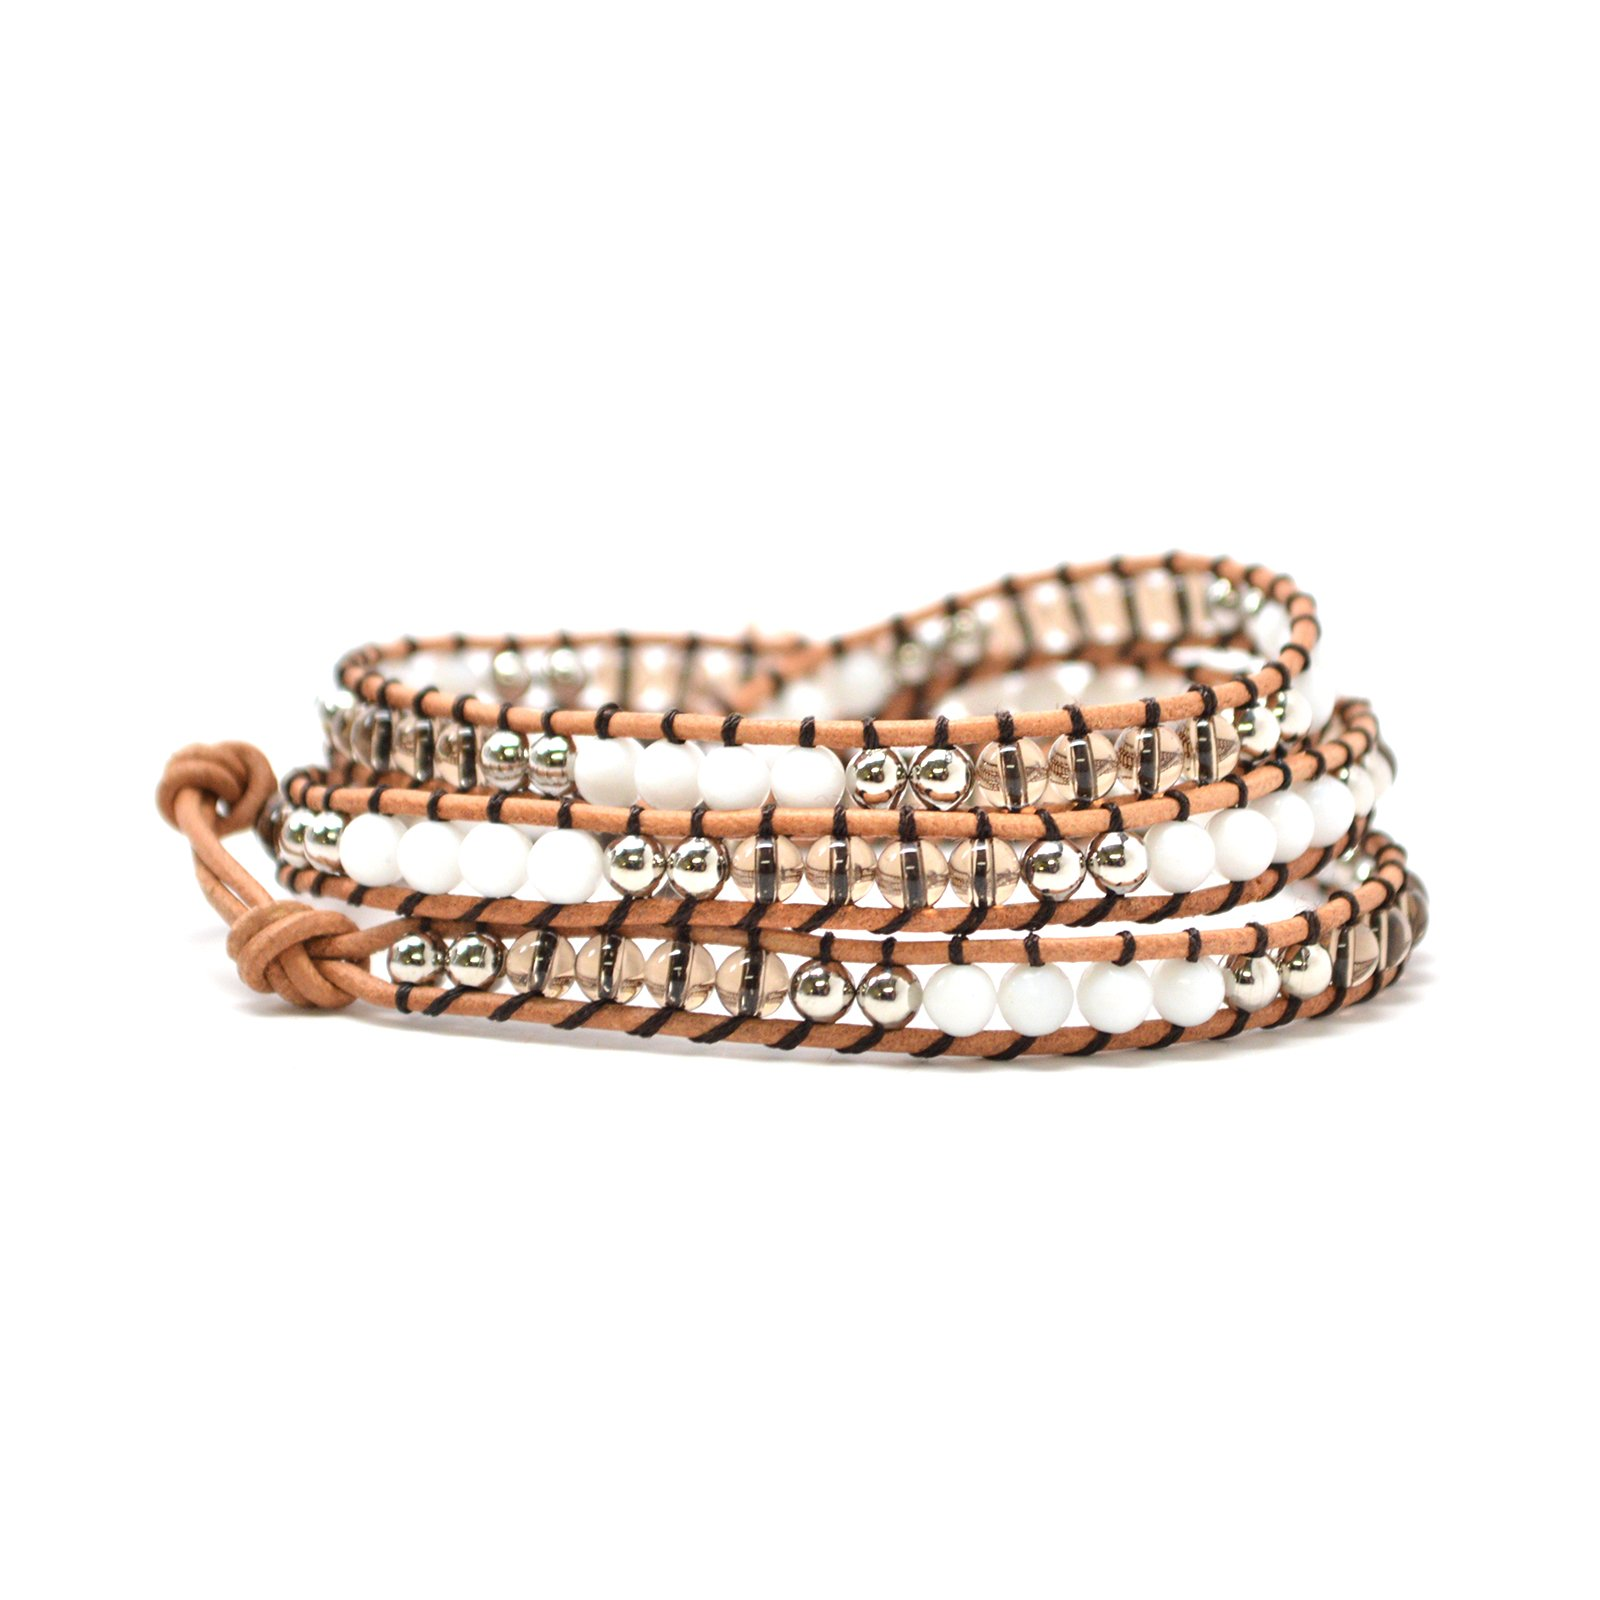 The Tiger Cub Boho Style Light Brown Wrap Black String White Clear Agate Semi-precious Beads Bracelet (23 Inches)